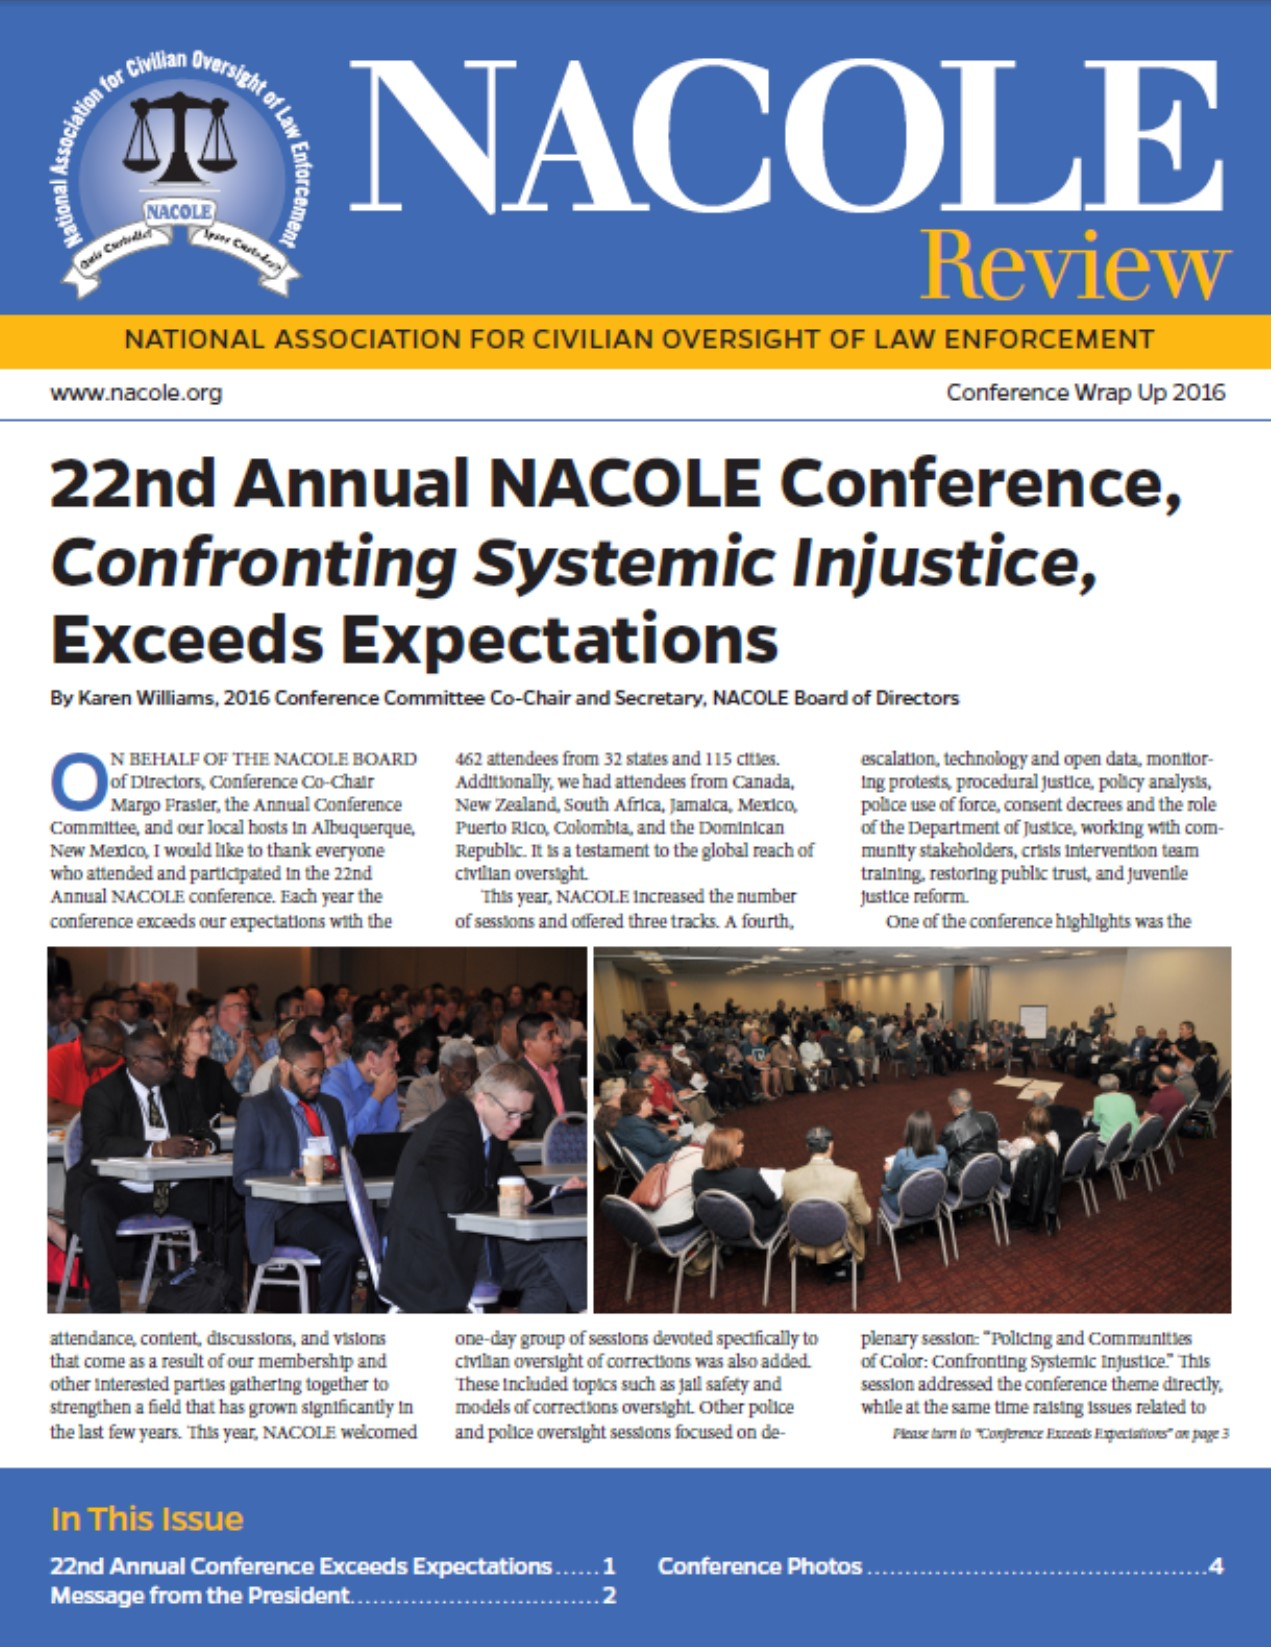 2016 Annual Conference Wrap-Up Edition